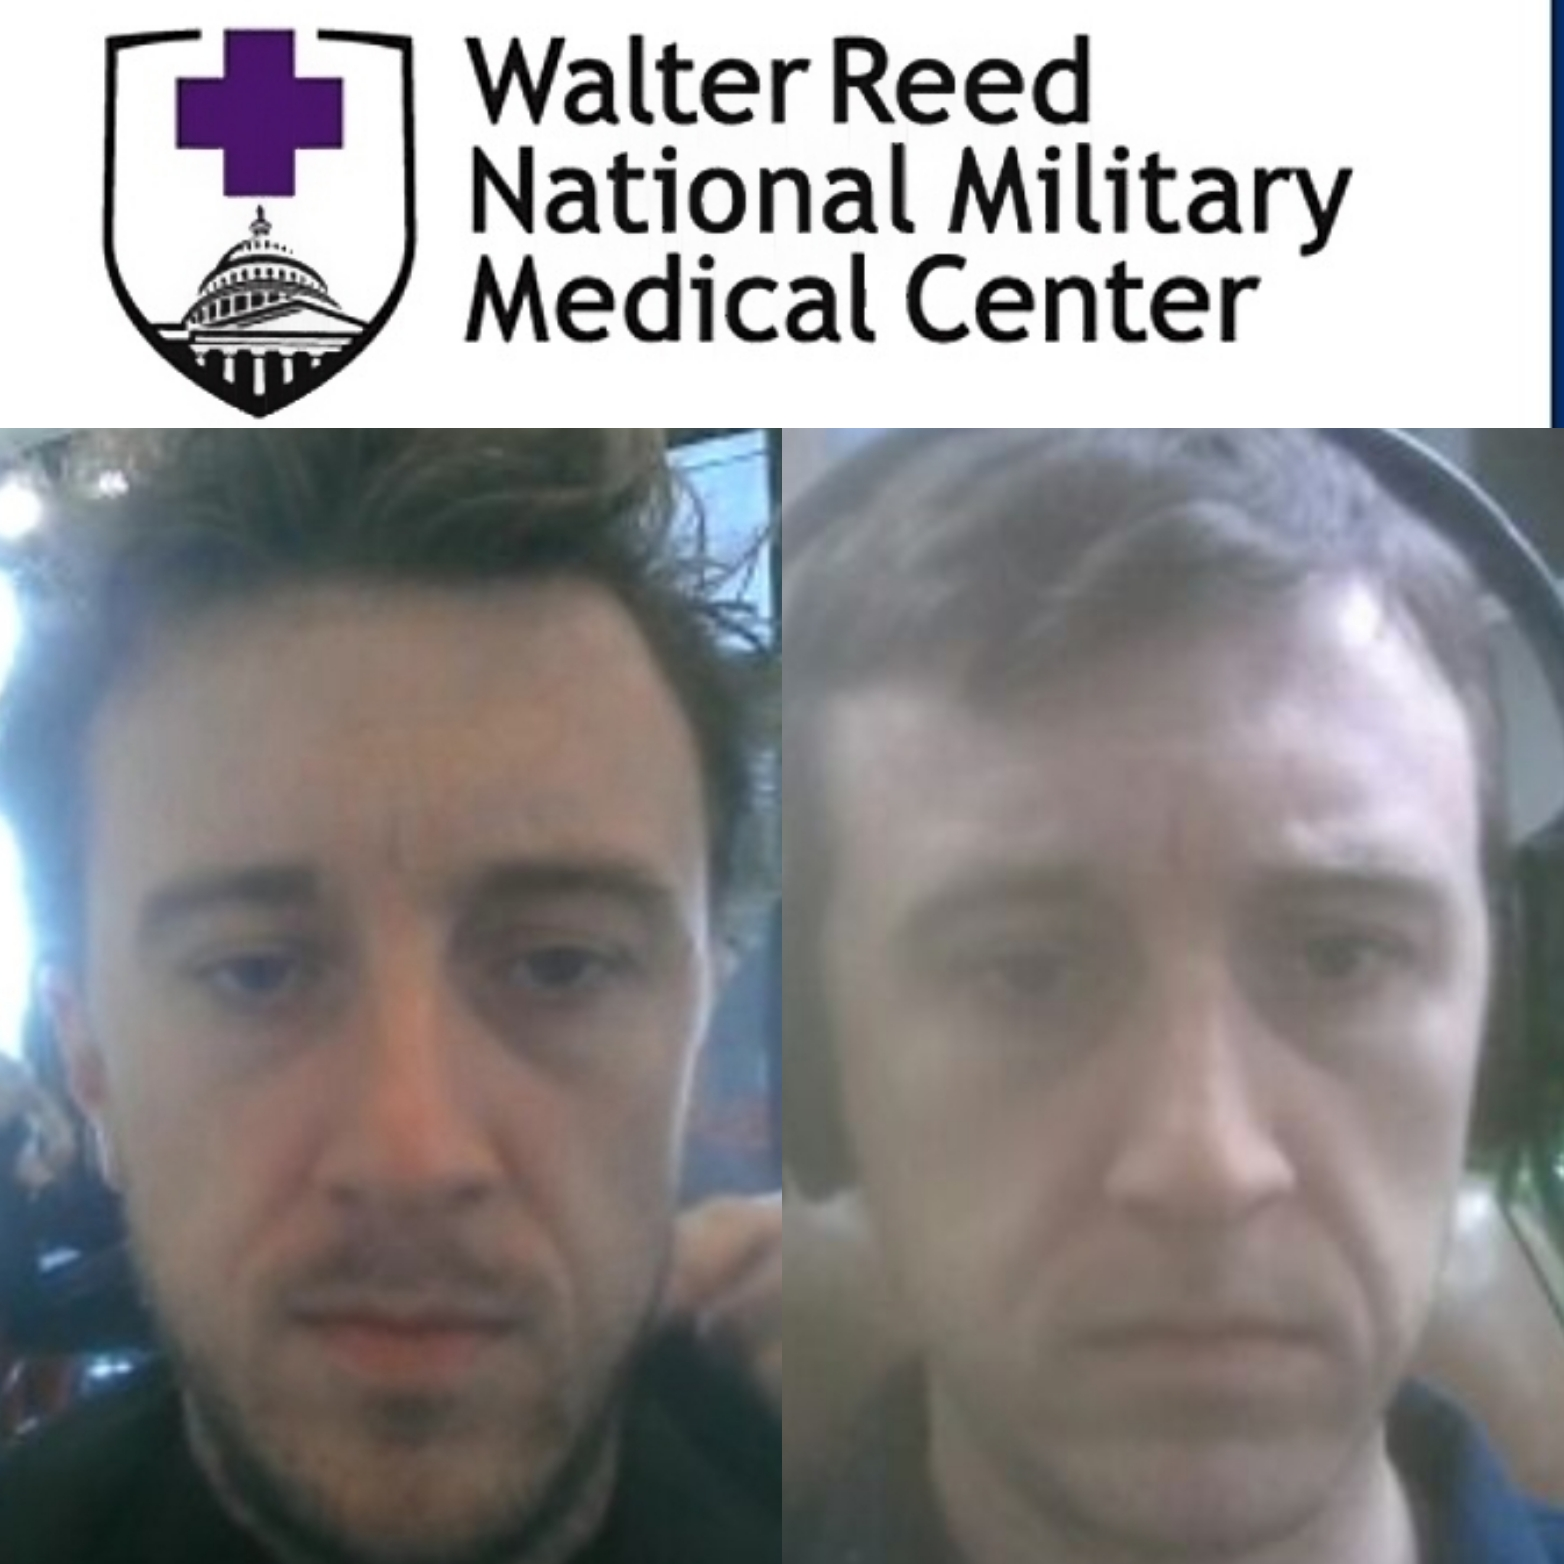 """Walter Reed Military Medical Center Michael """"MJ The Terrible"""" Johnson Haircut Shave and Mental Health Assessment Collage"""